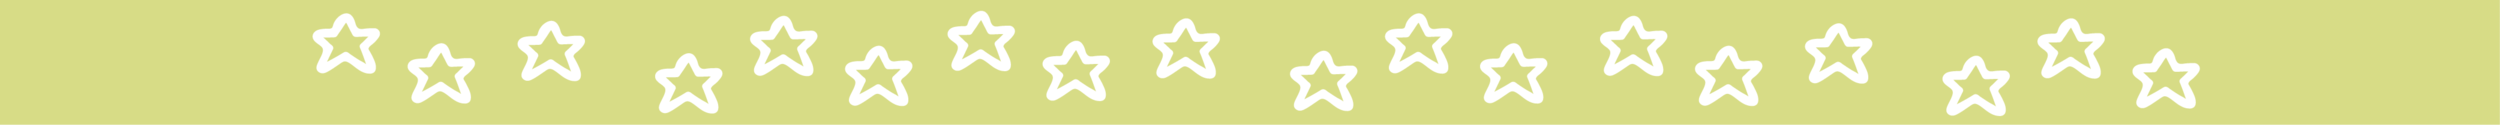 Girls Who Can green bar 50 stars.png